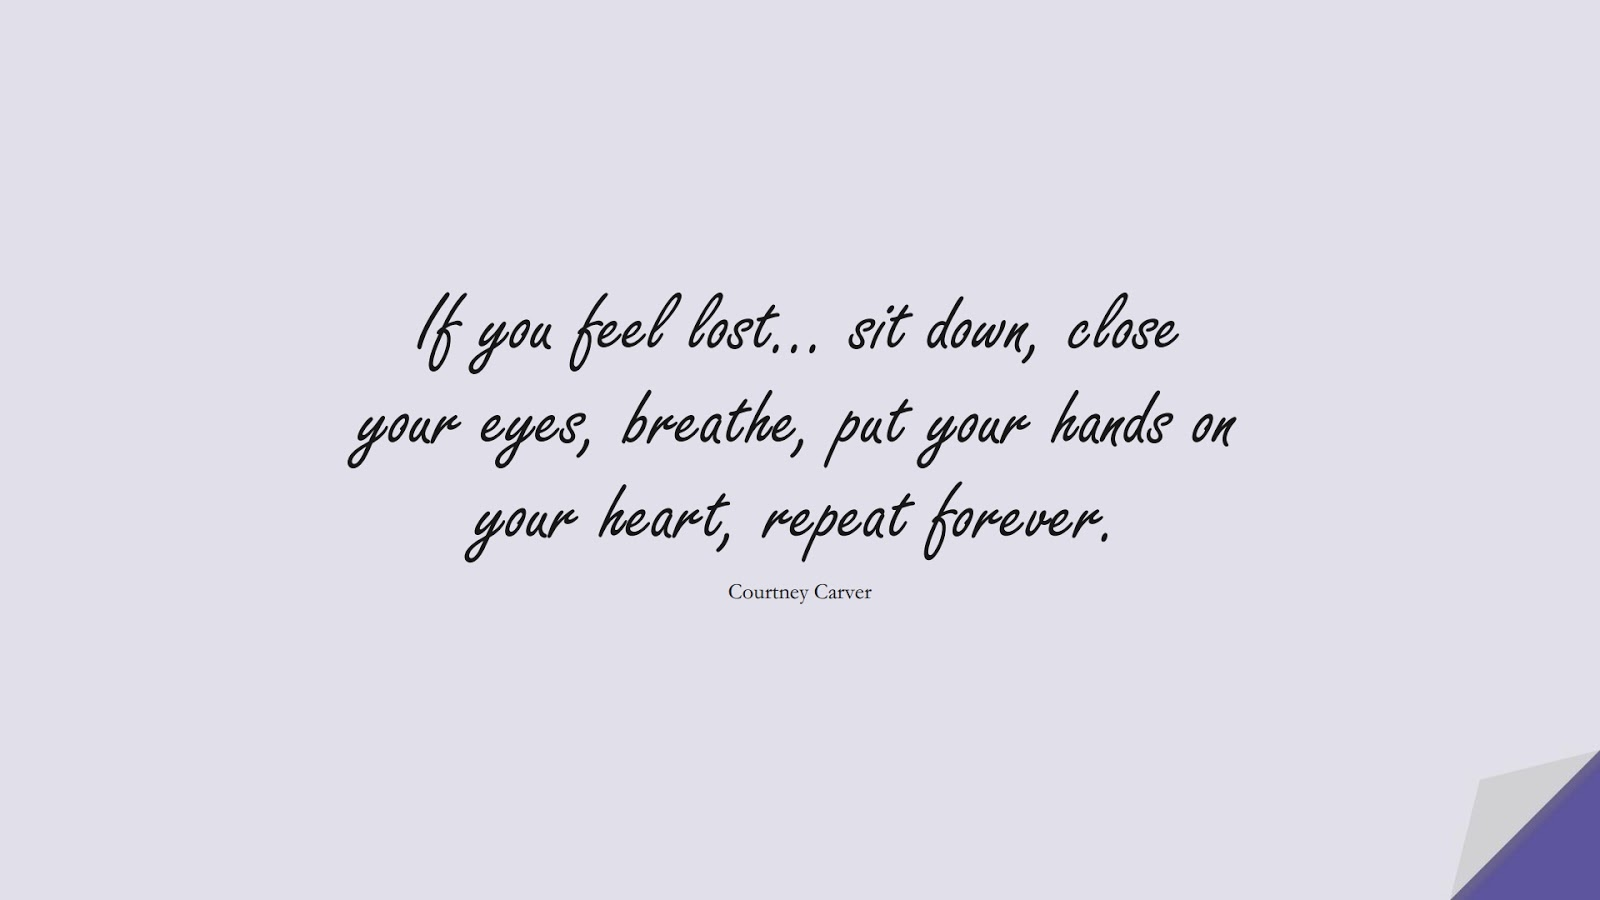 If you feel lost… sit down, close your eyes, breathe, put your hands on your heart, repeat forever. (Courtney Carver);  #StressQuotes